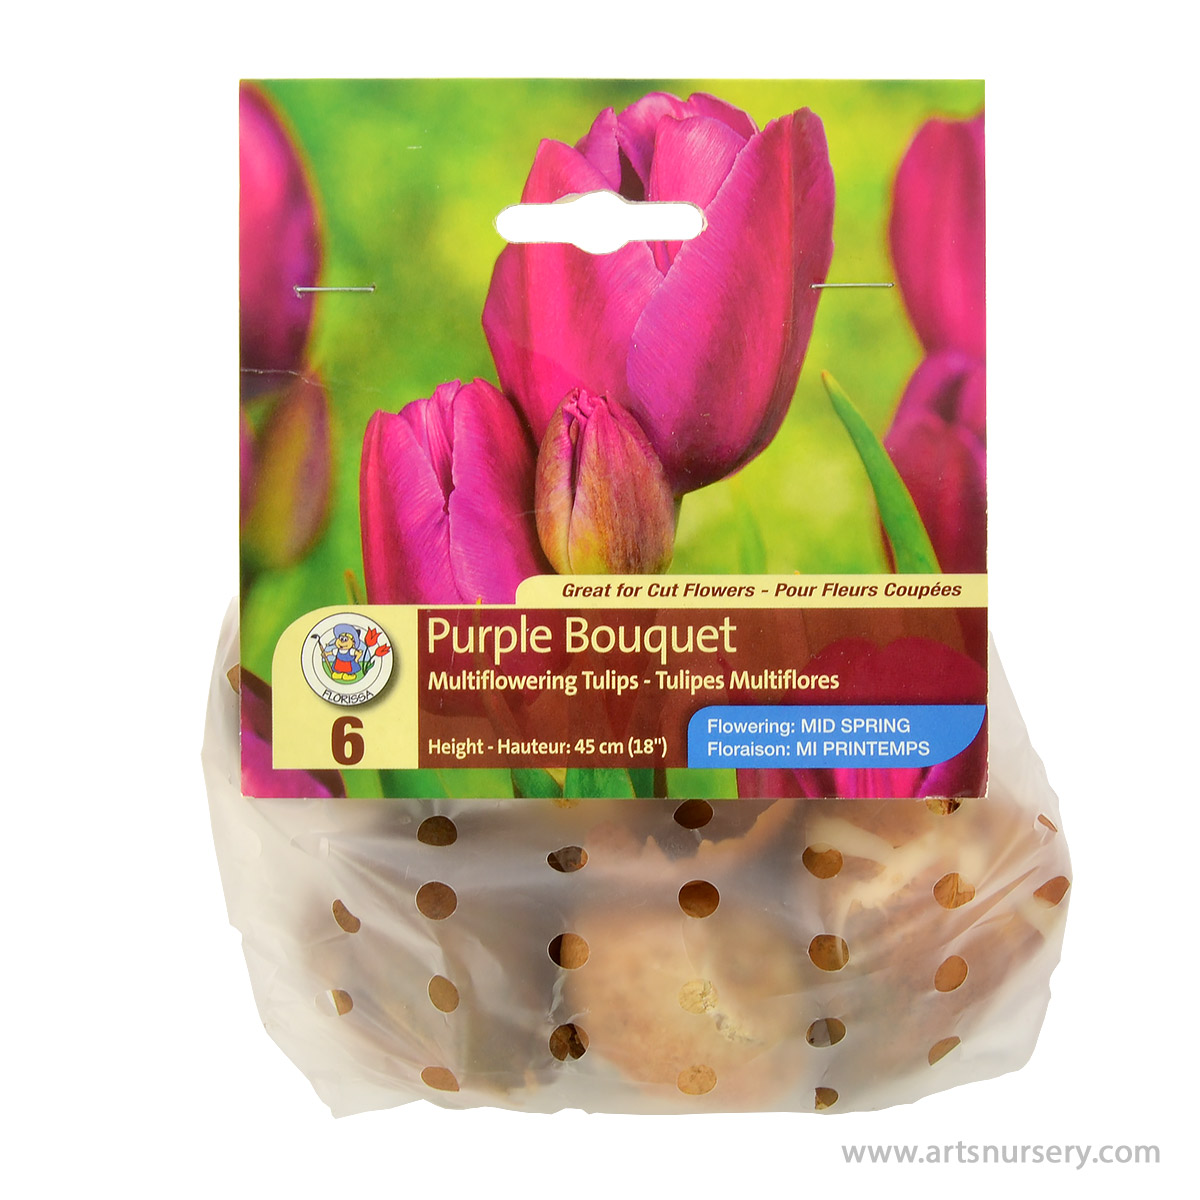 Tulipa 'Purple Bouquet' Bulbs